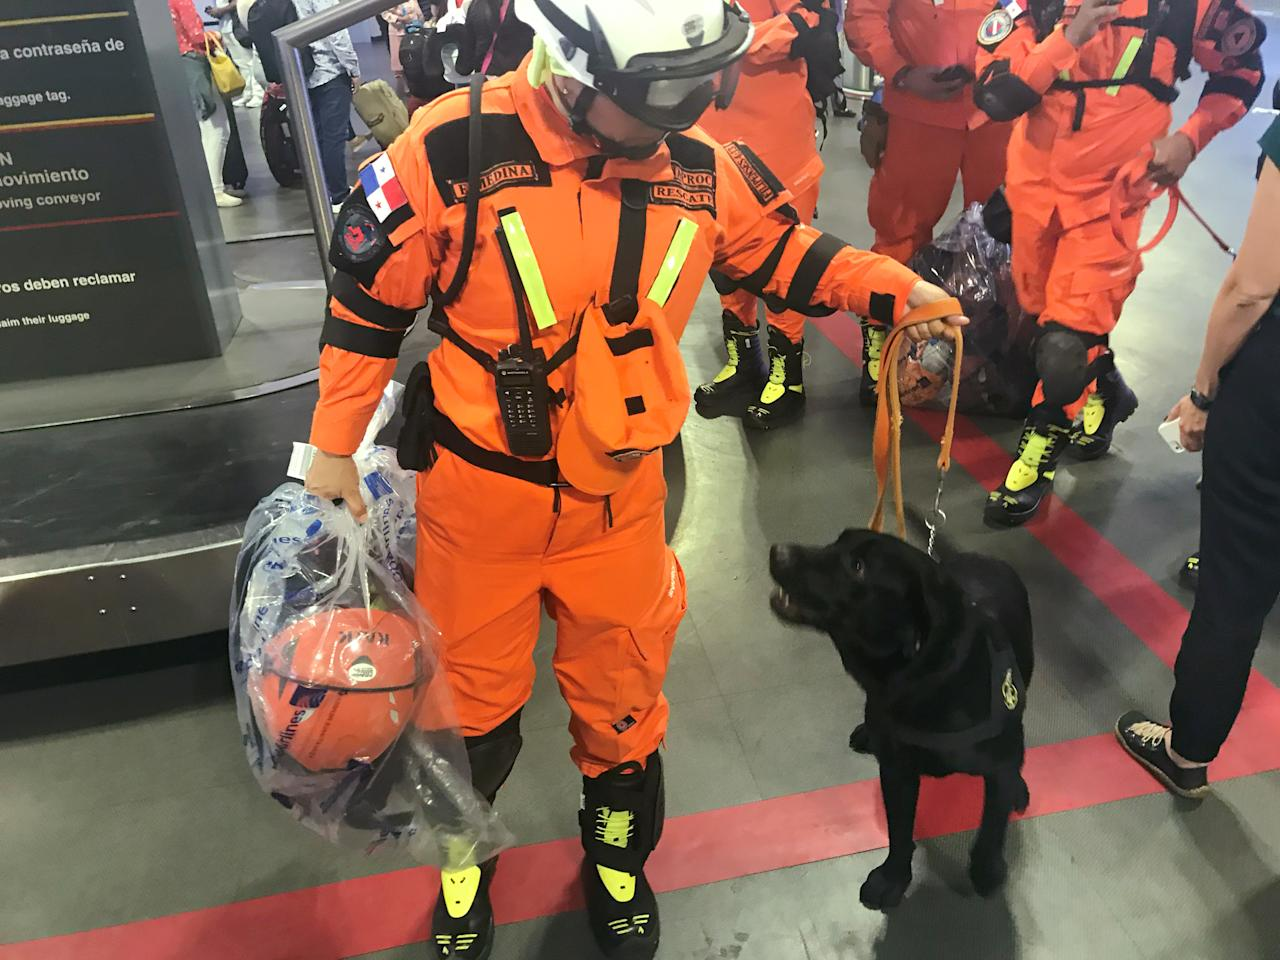 <p>Rescue personnel from Panama's Civil Protection team and their dogs arrive at the airport to aid in recovery efforts after an earthquake caused buildings in the city to collapse in Mexico City, Mexico, Sept. 20, 2017. (Photo: Dan Trotta/Reuters) </p>